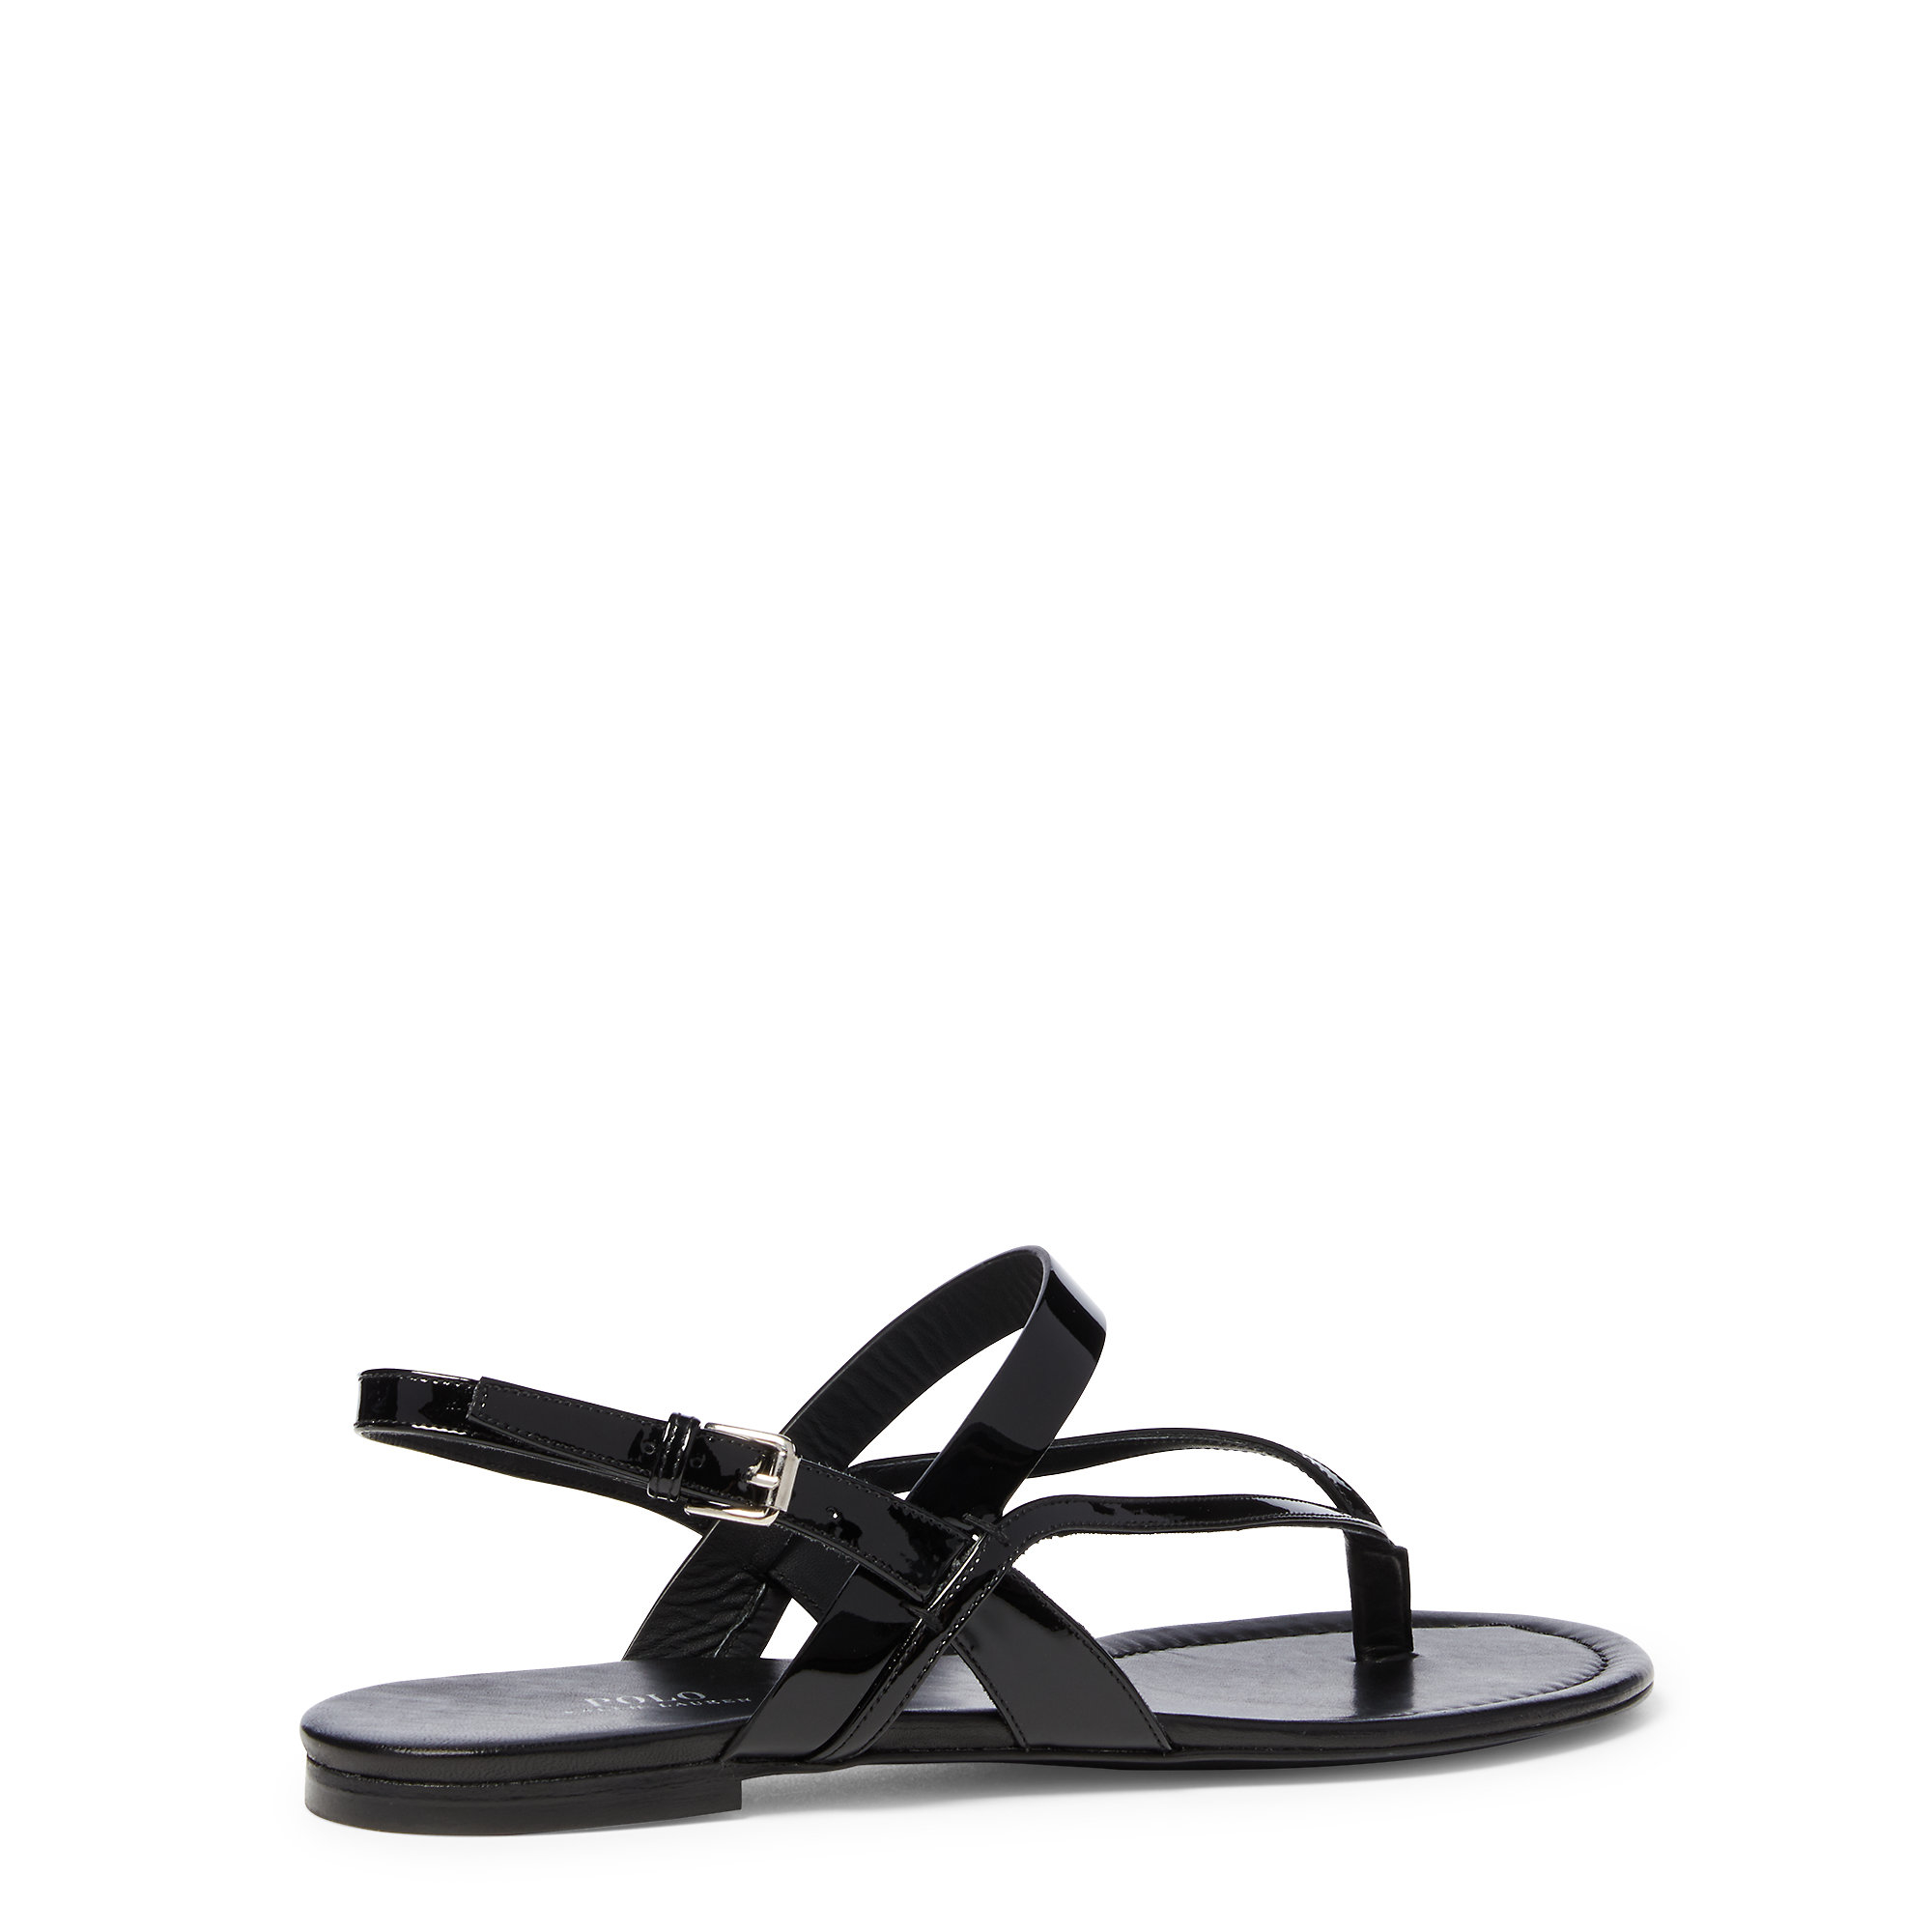 view sale online purchase online Lauren Ralph Lauren Patent Leather Slide Sandals b4h0D1F8